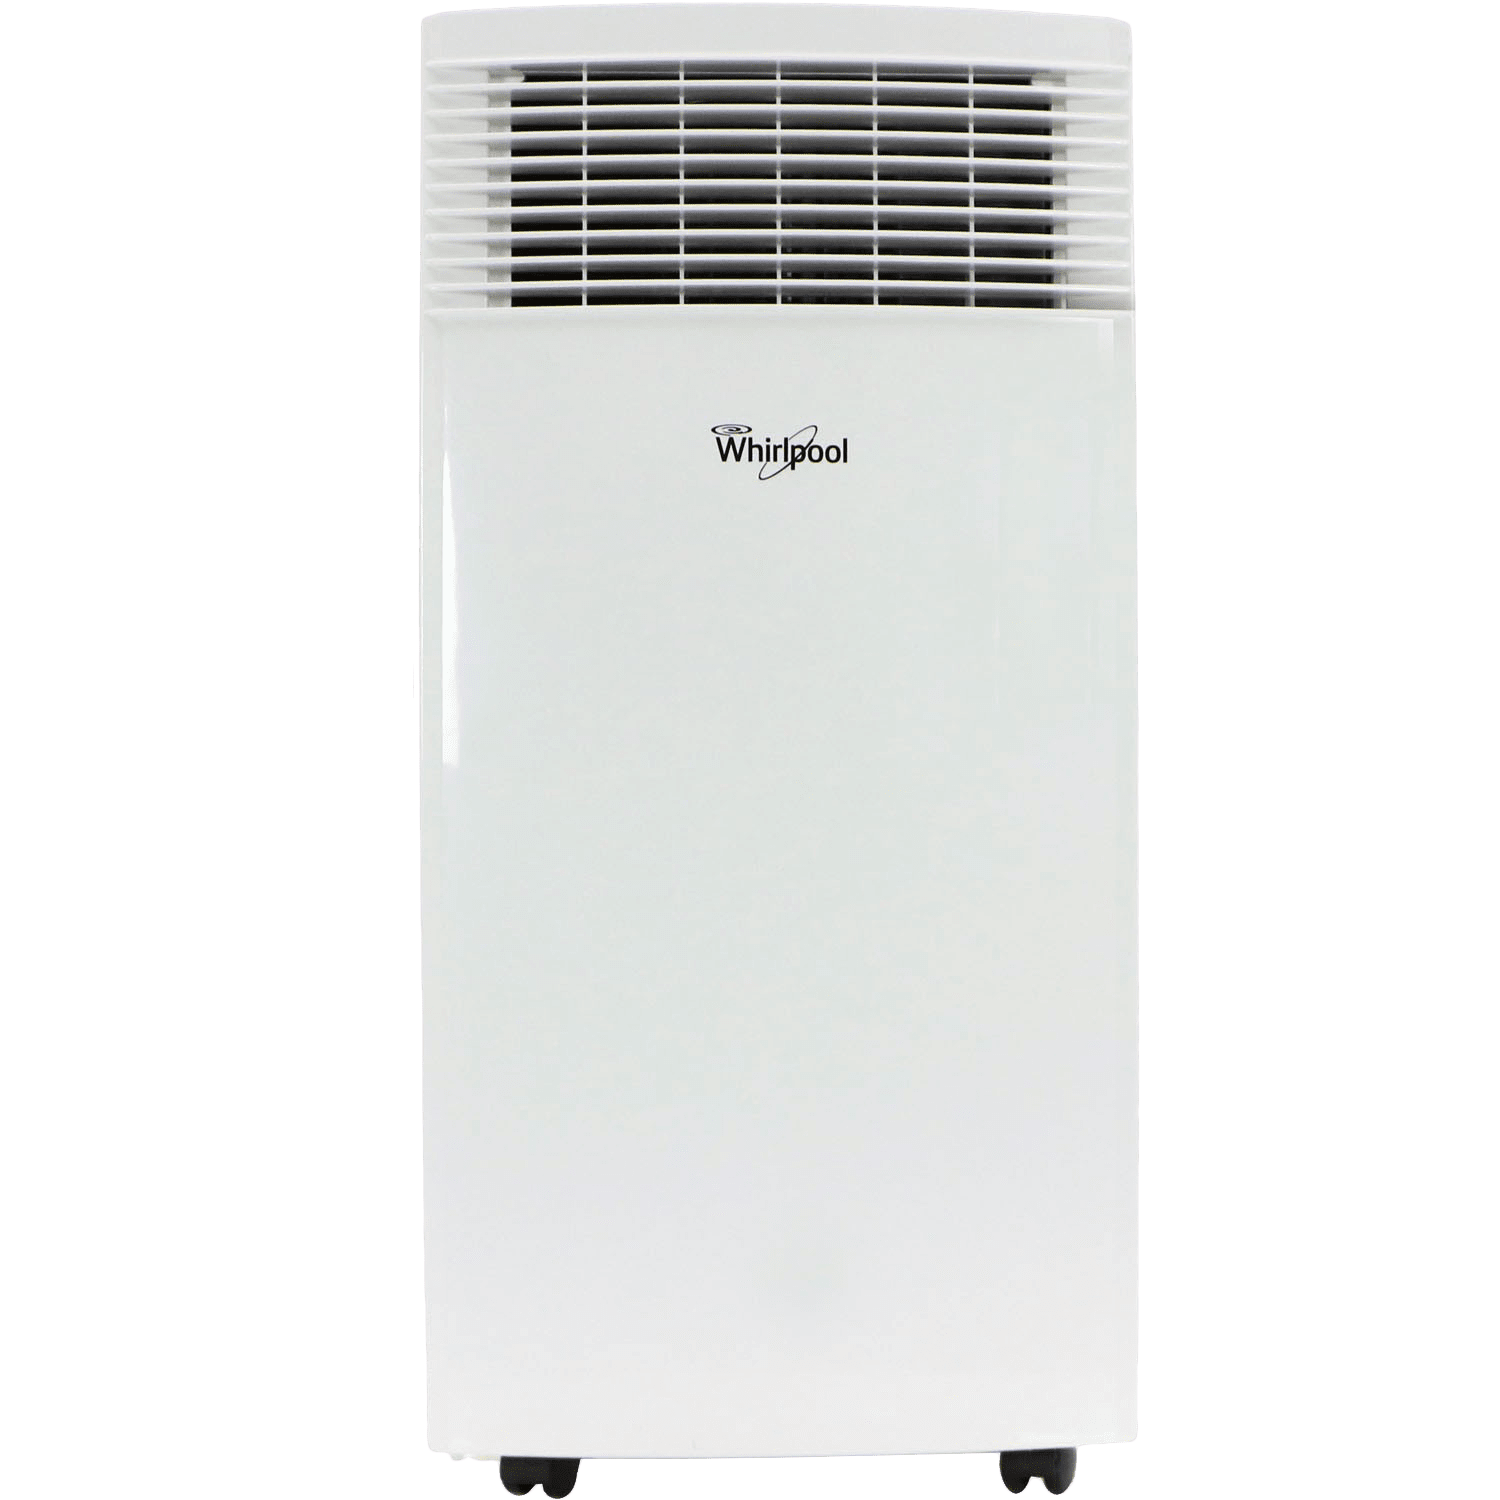 Whirlpool Portable Air Conditioner (WHAP101AW) | Sylvane